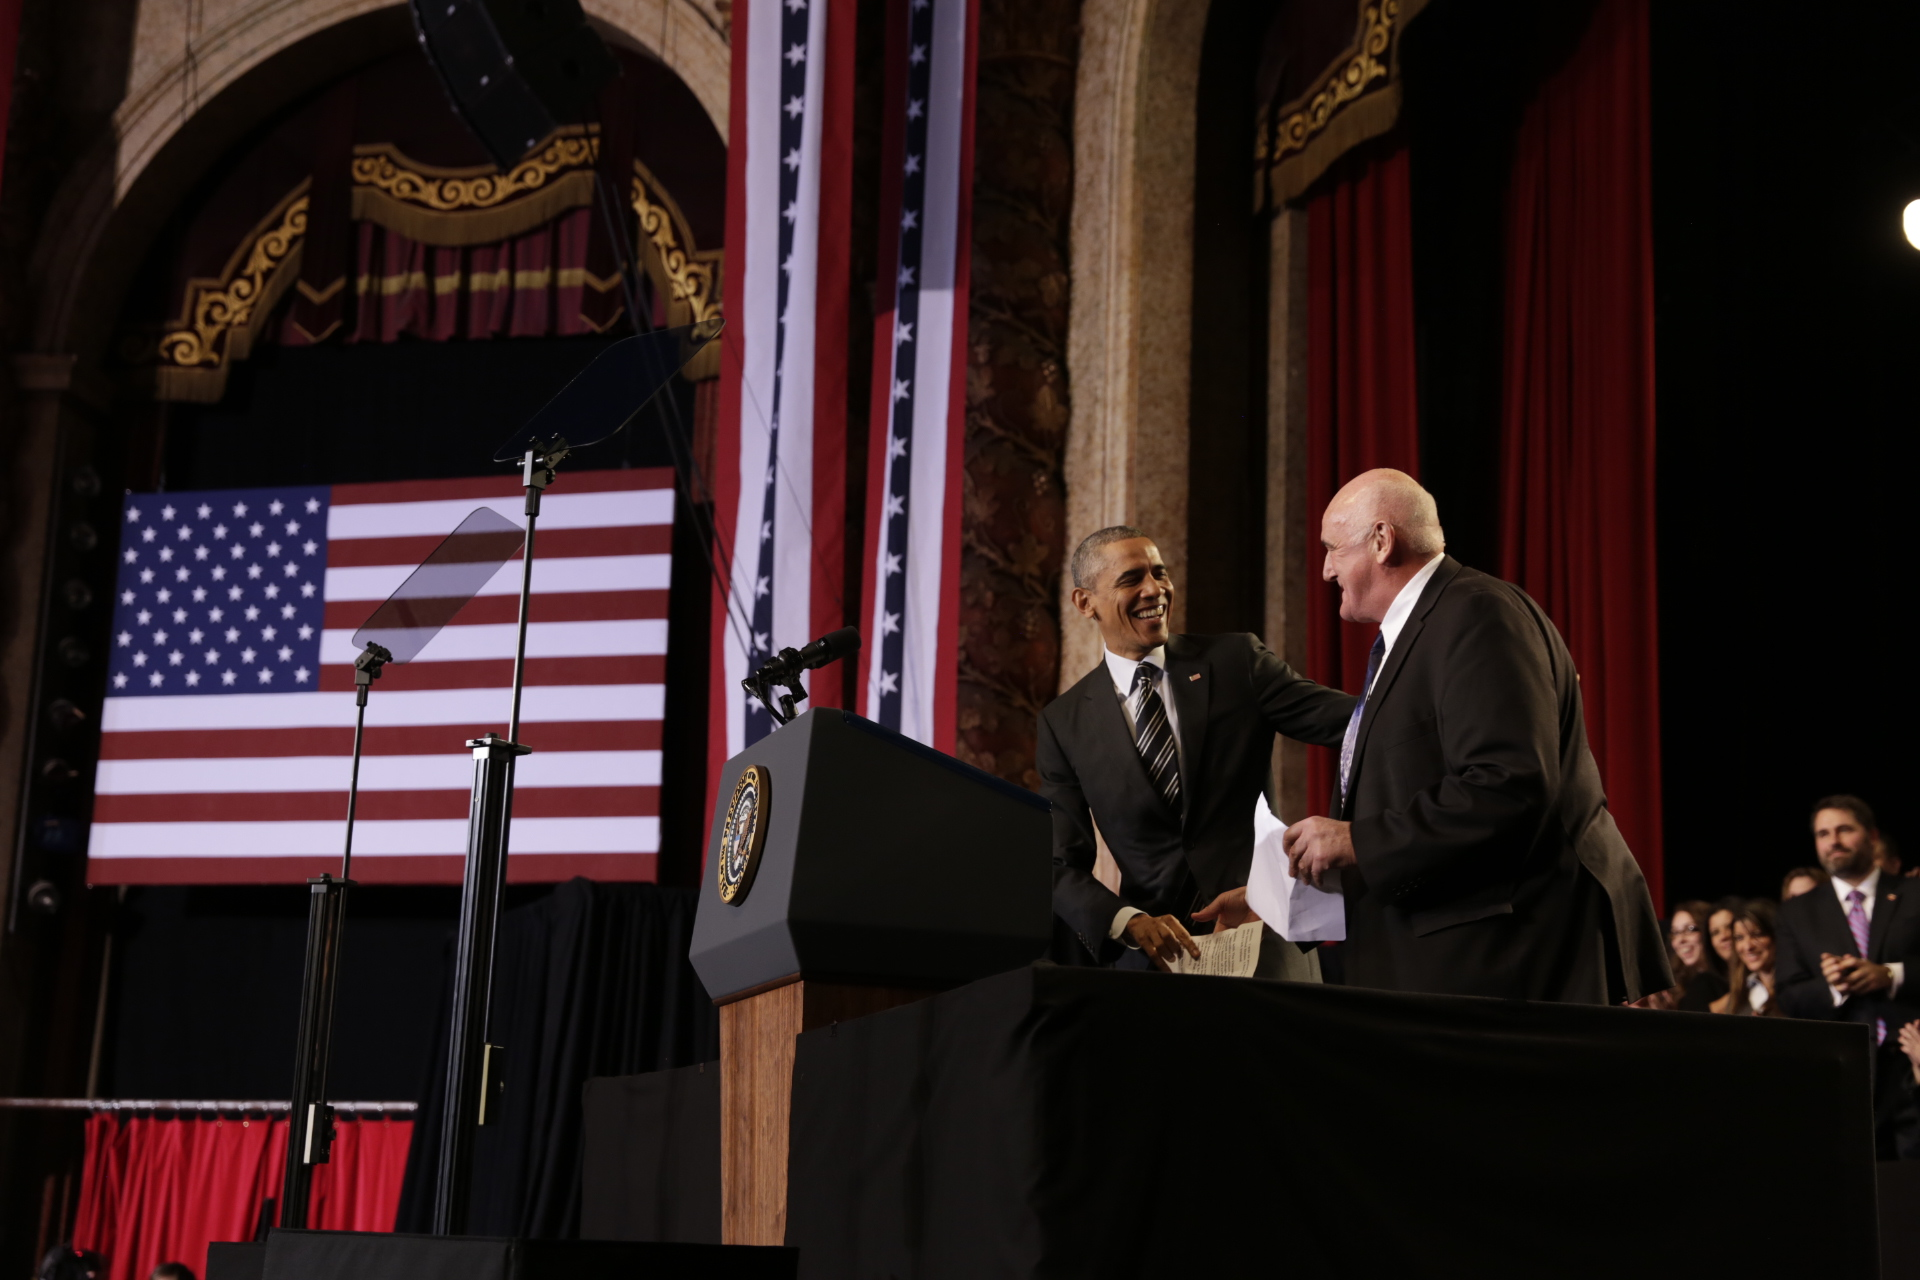 Billy Lawless introduces President Obama for remarks on immigration in Chicago